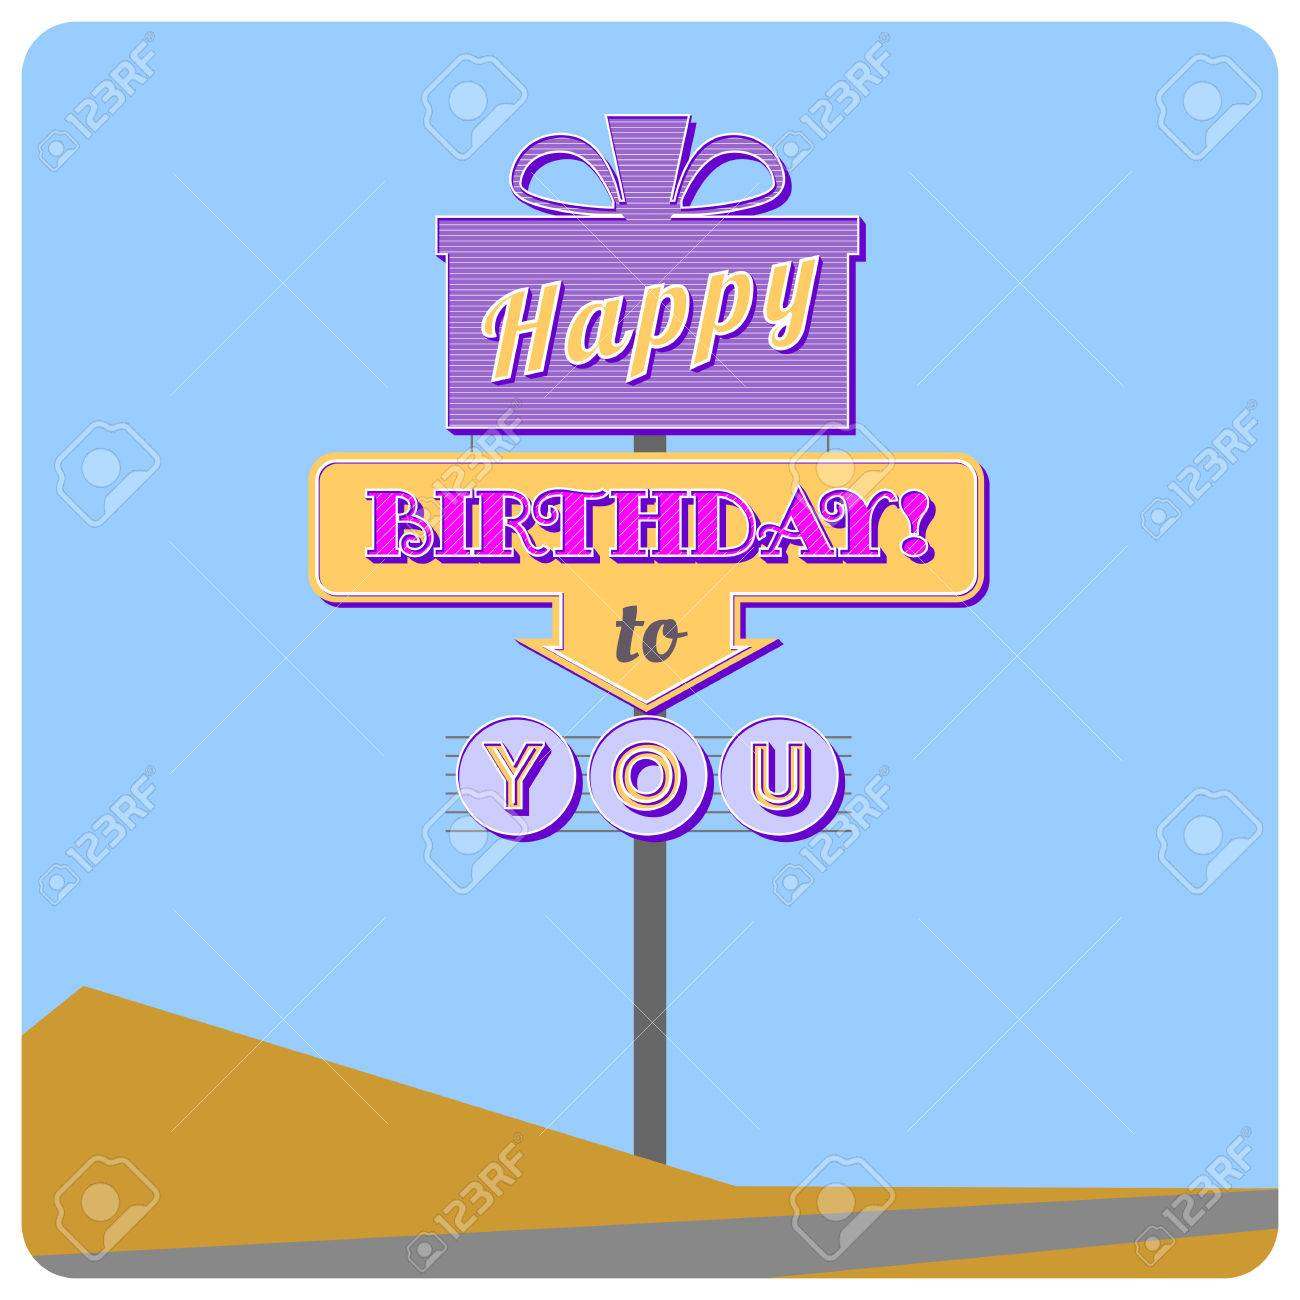 Happy Birthday Road Sign Greeting Card In The Style Of The American